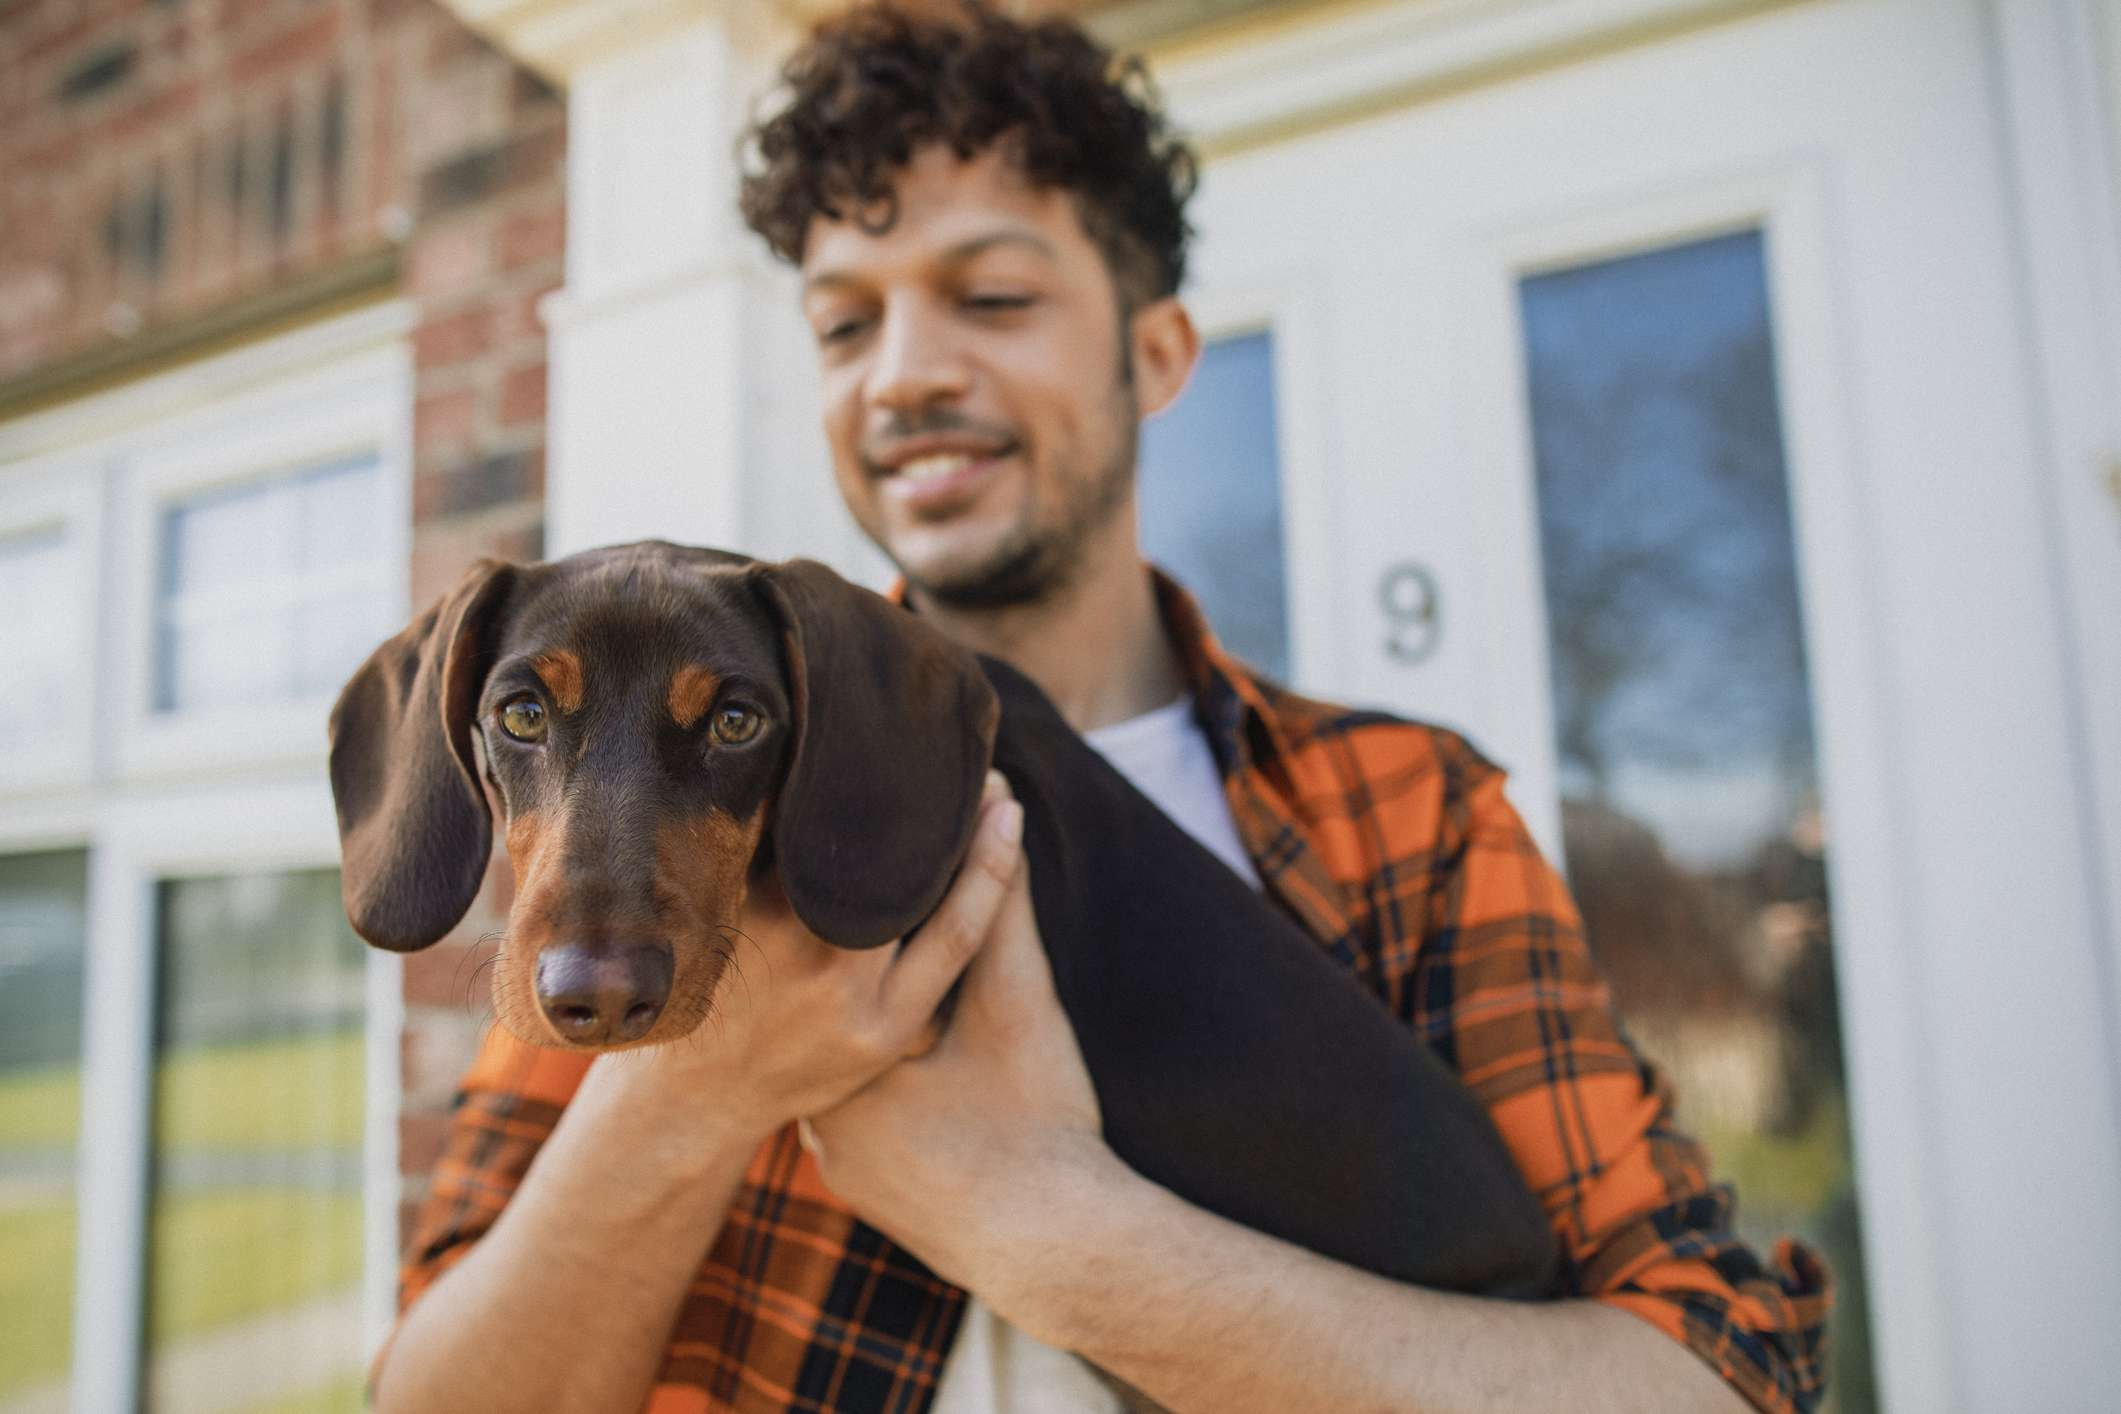 Dachshund looking at camera being held by a man.